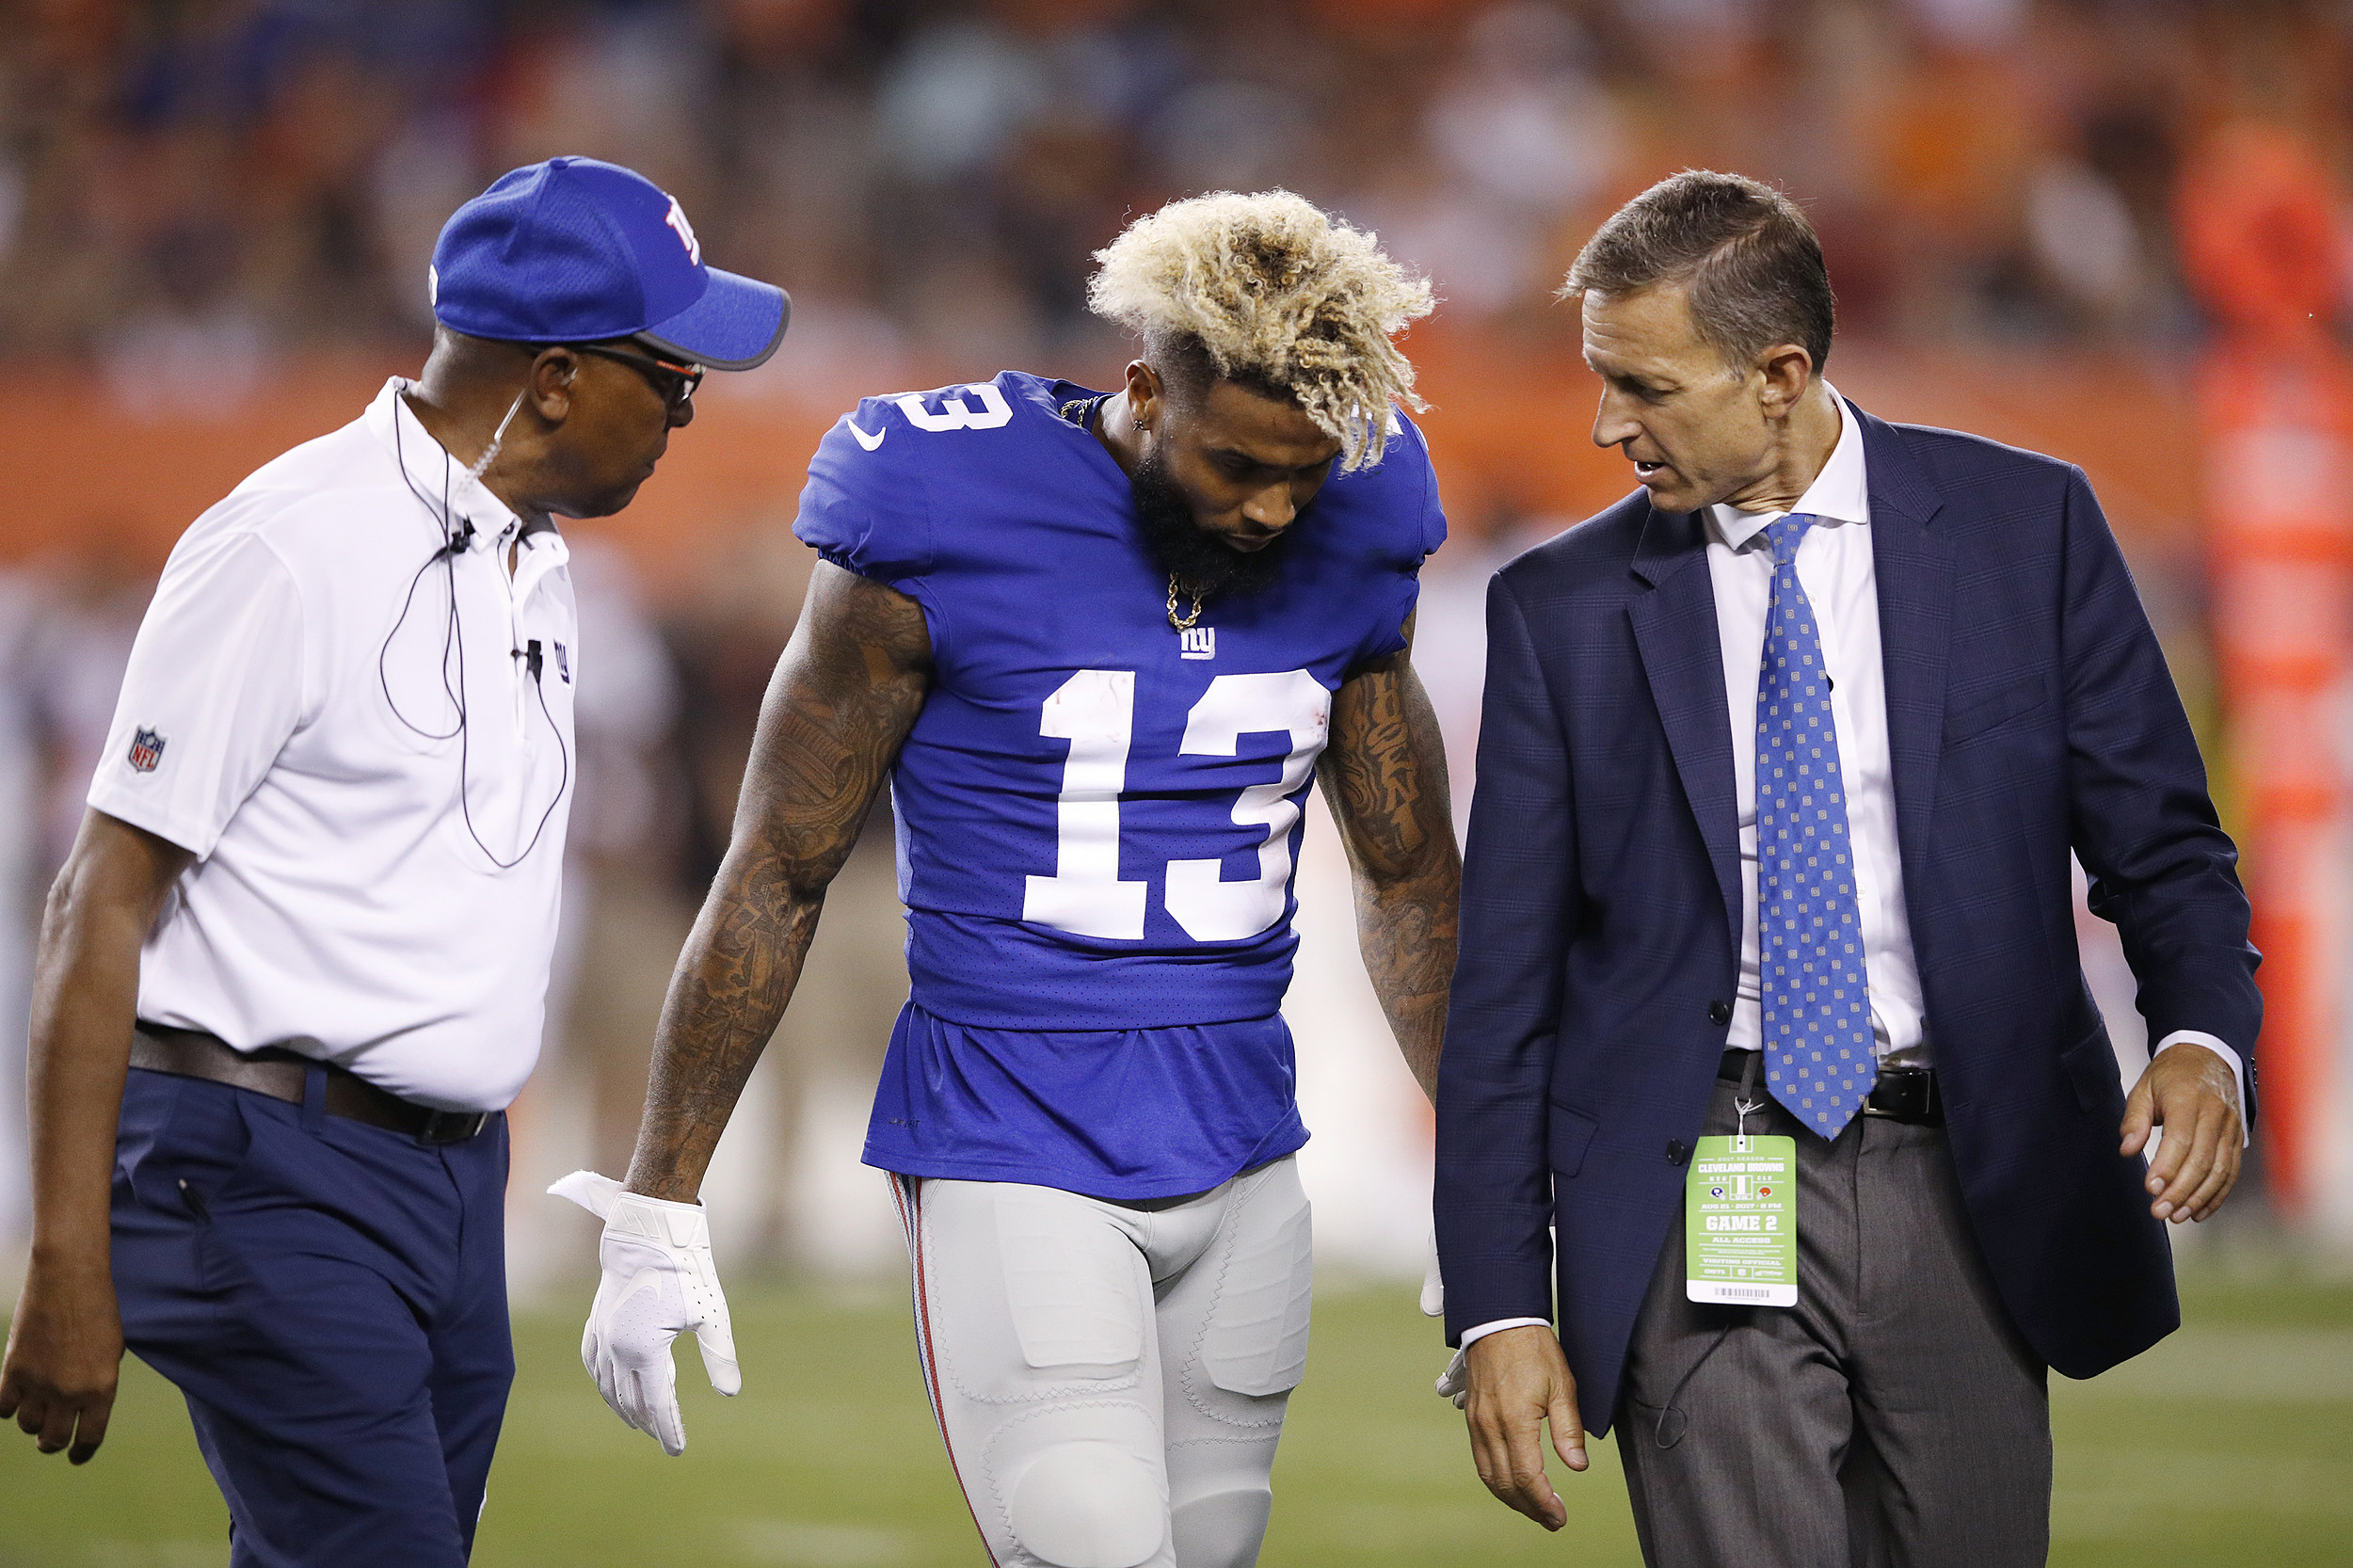 Giants' Odell Beckham could miss first two weeks of season